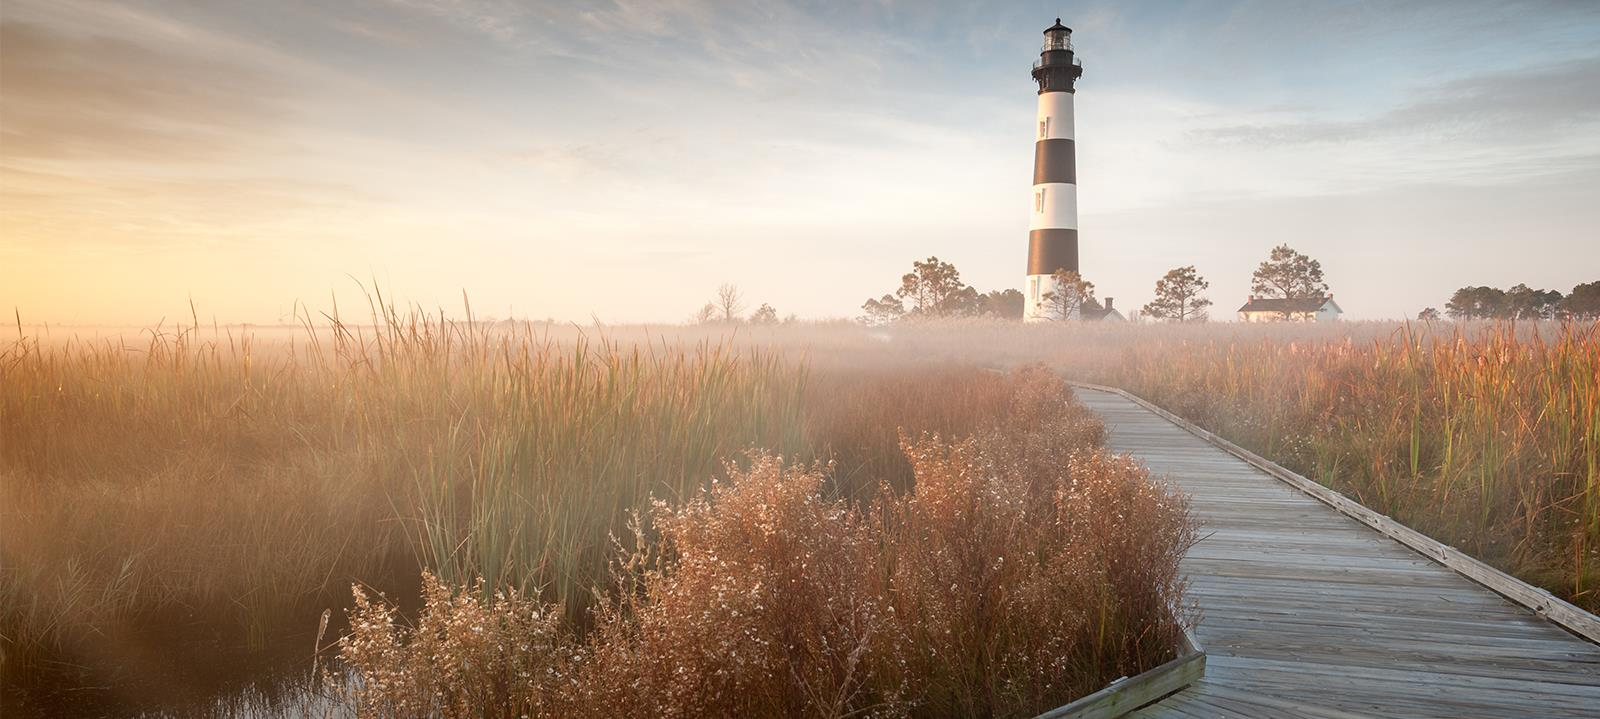 virginia beach law firm wolcott rivers gates lighthouse new hero